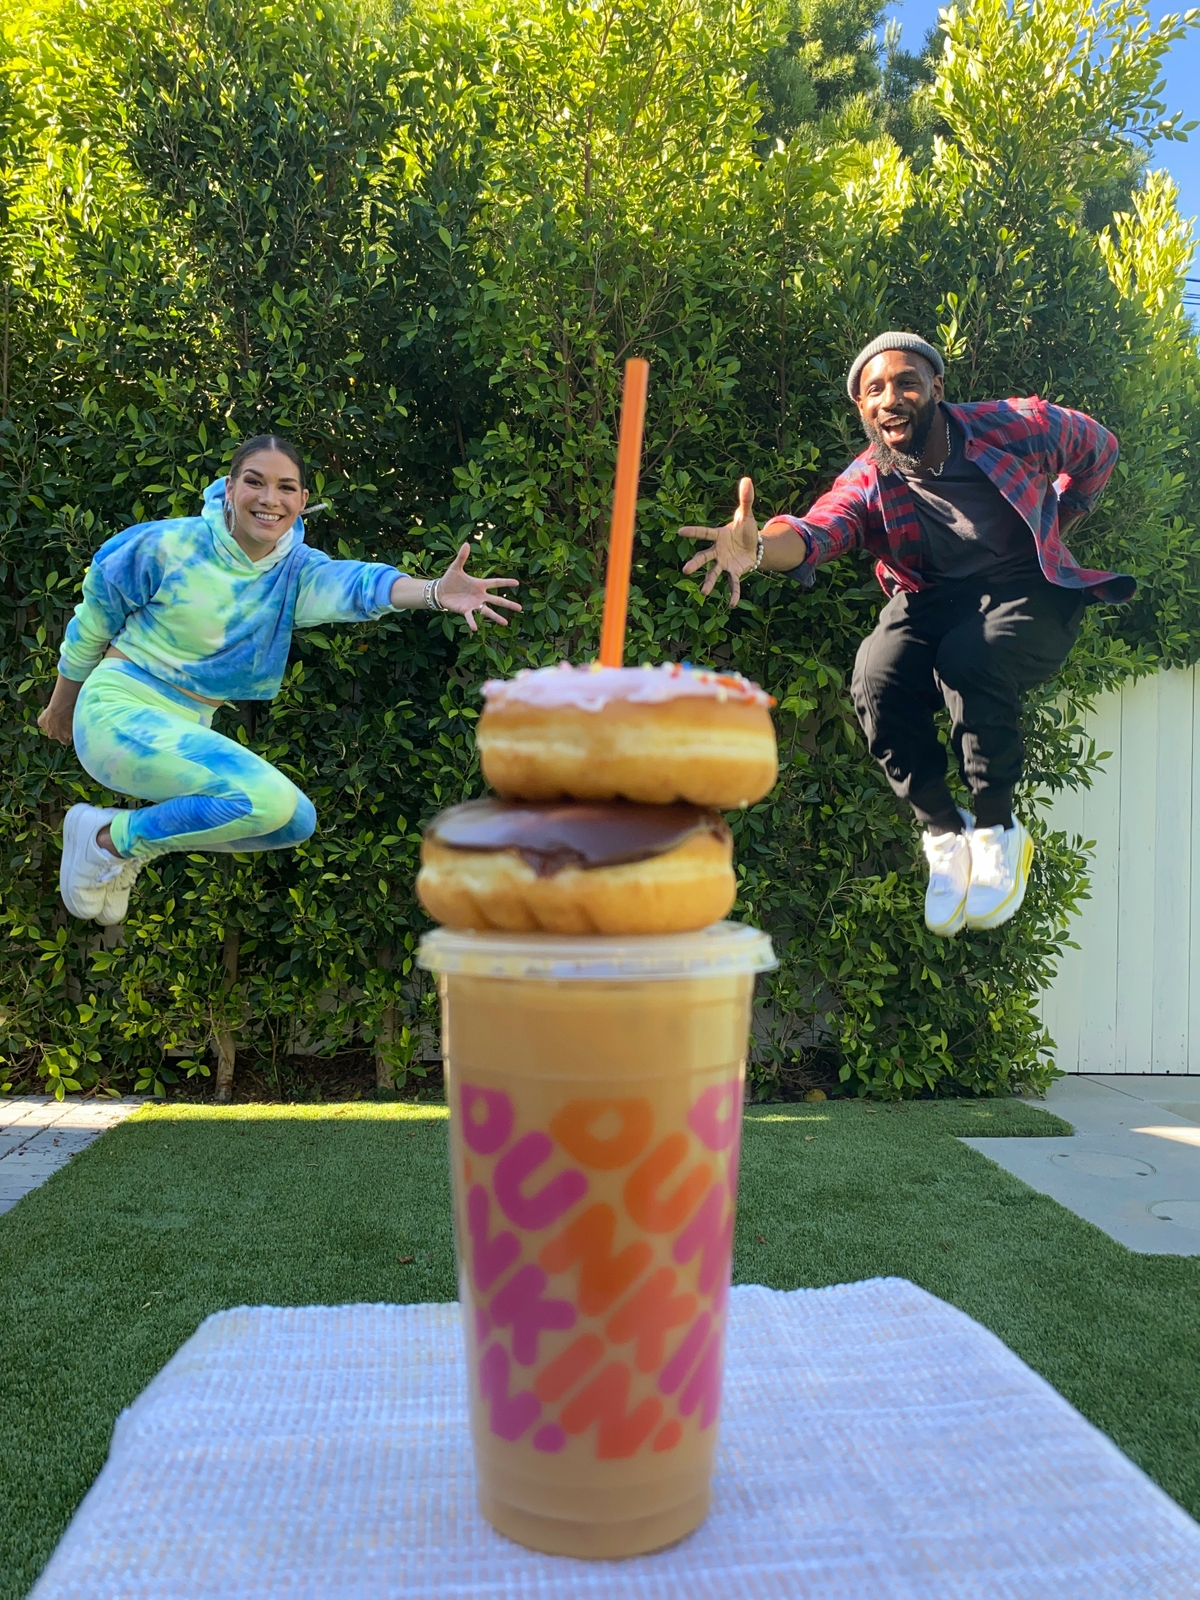 tWitch Boss and Allison Holker Encourage DD Perks® Members to Perk Up Their Week